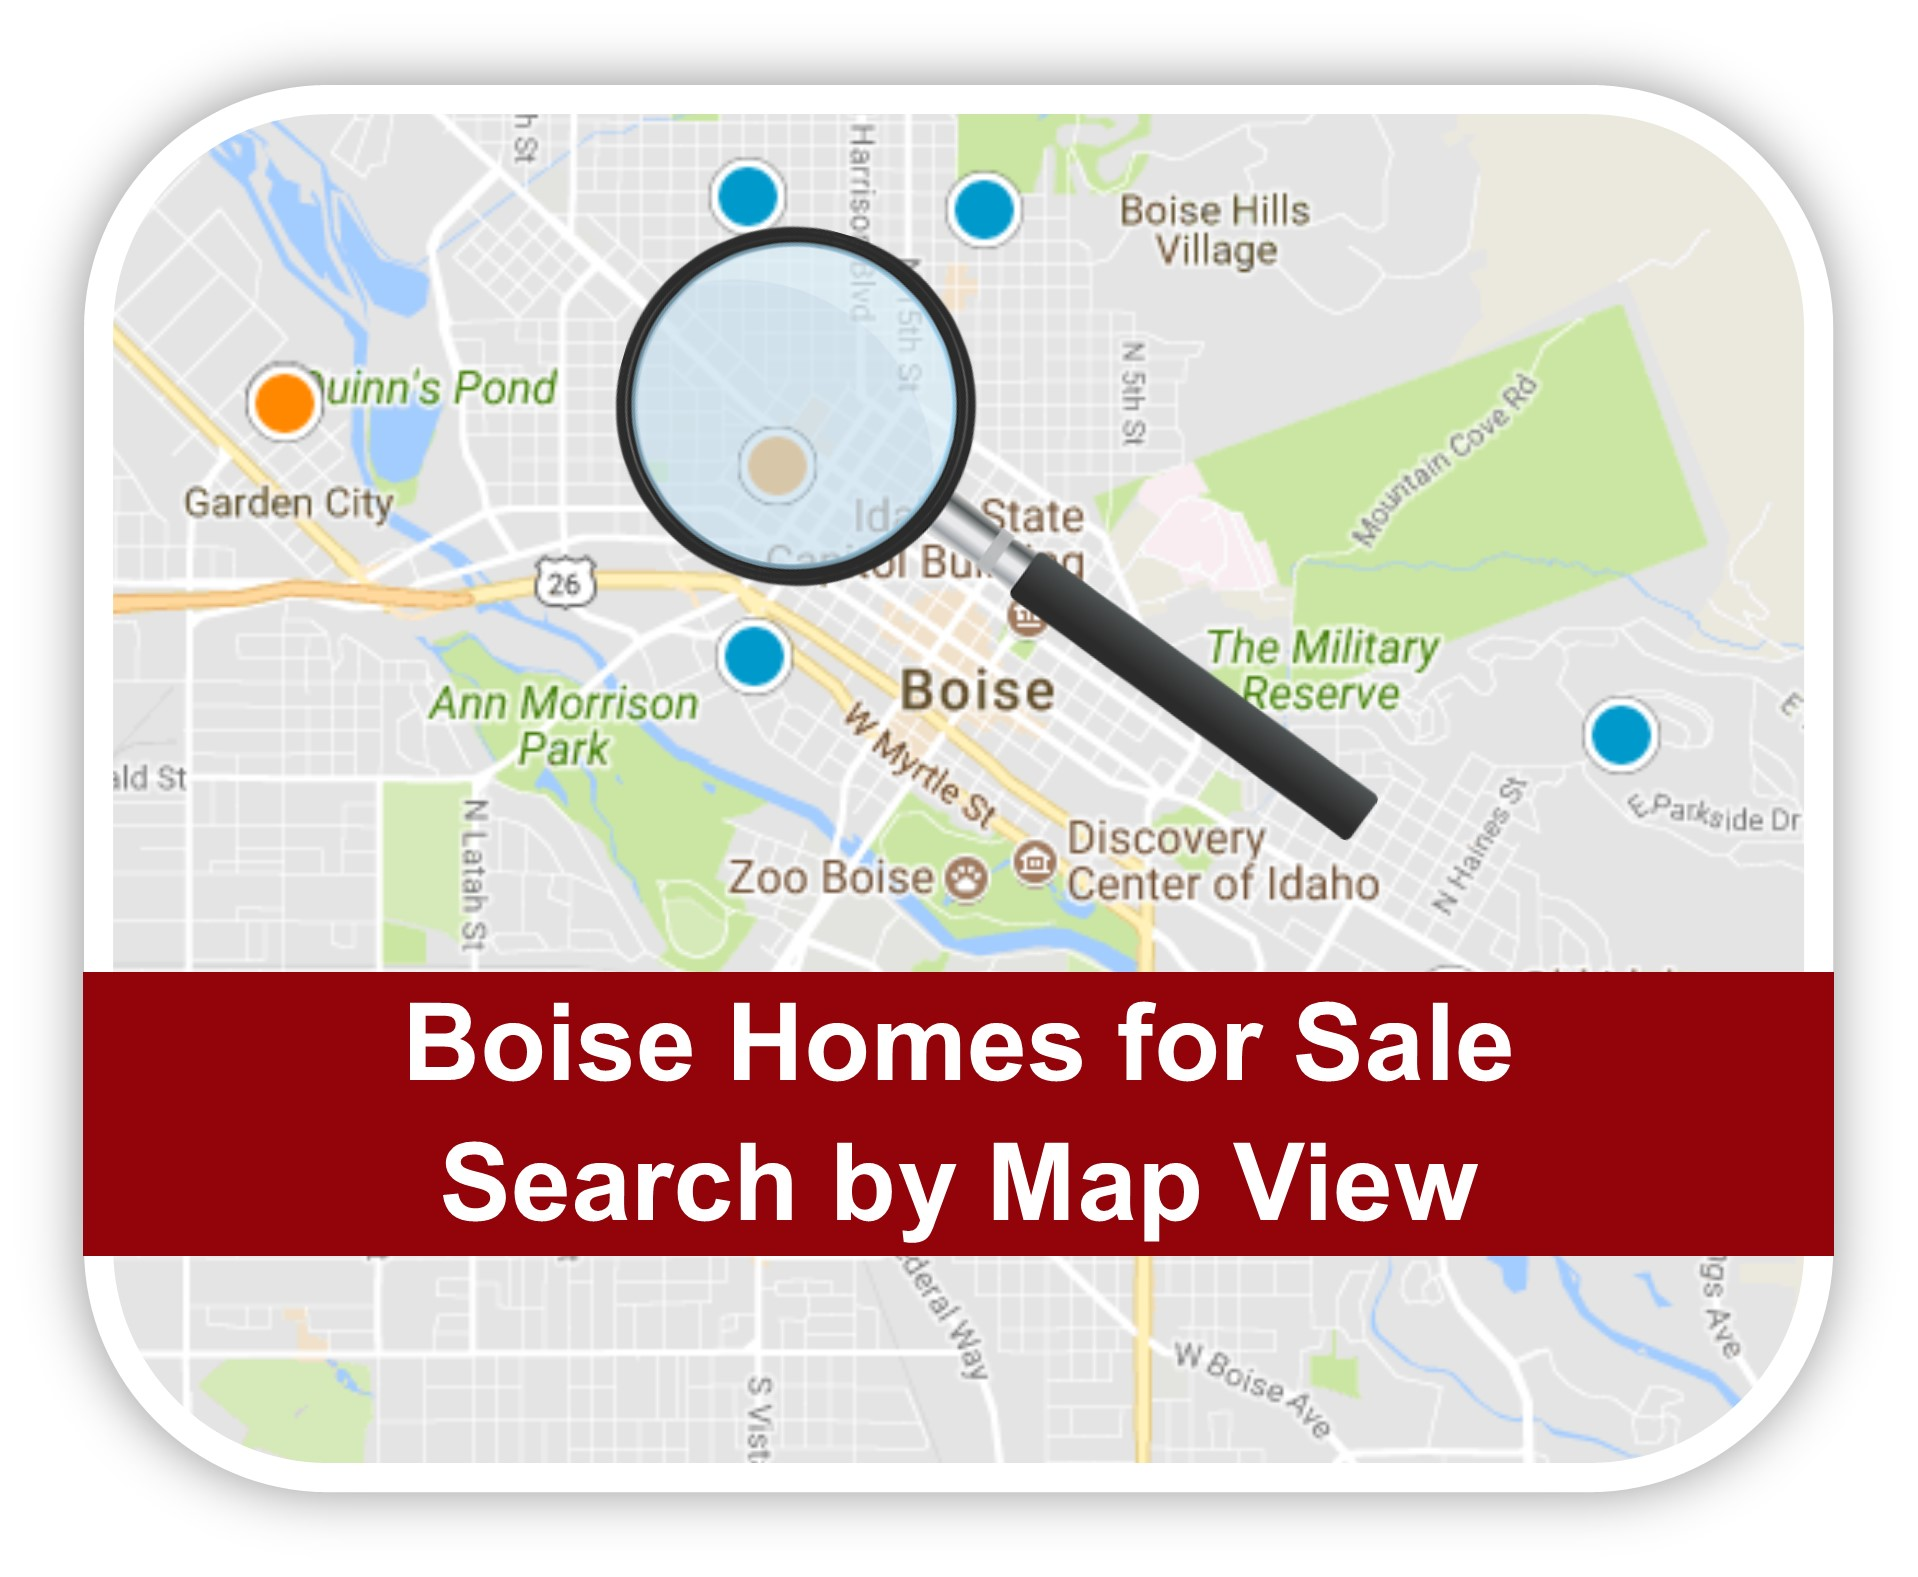 Search Homes for Sale in Boise, Idaho by Map View